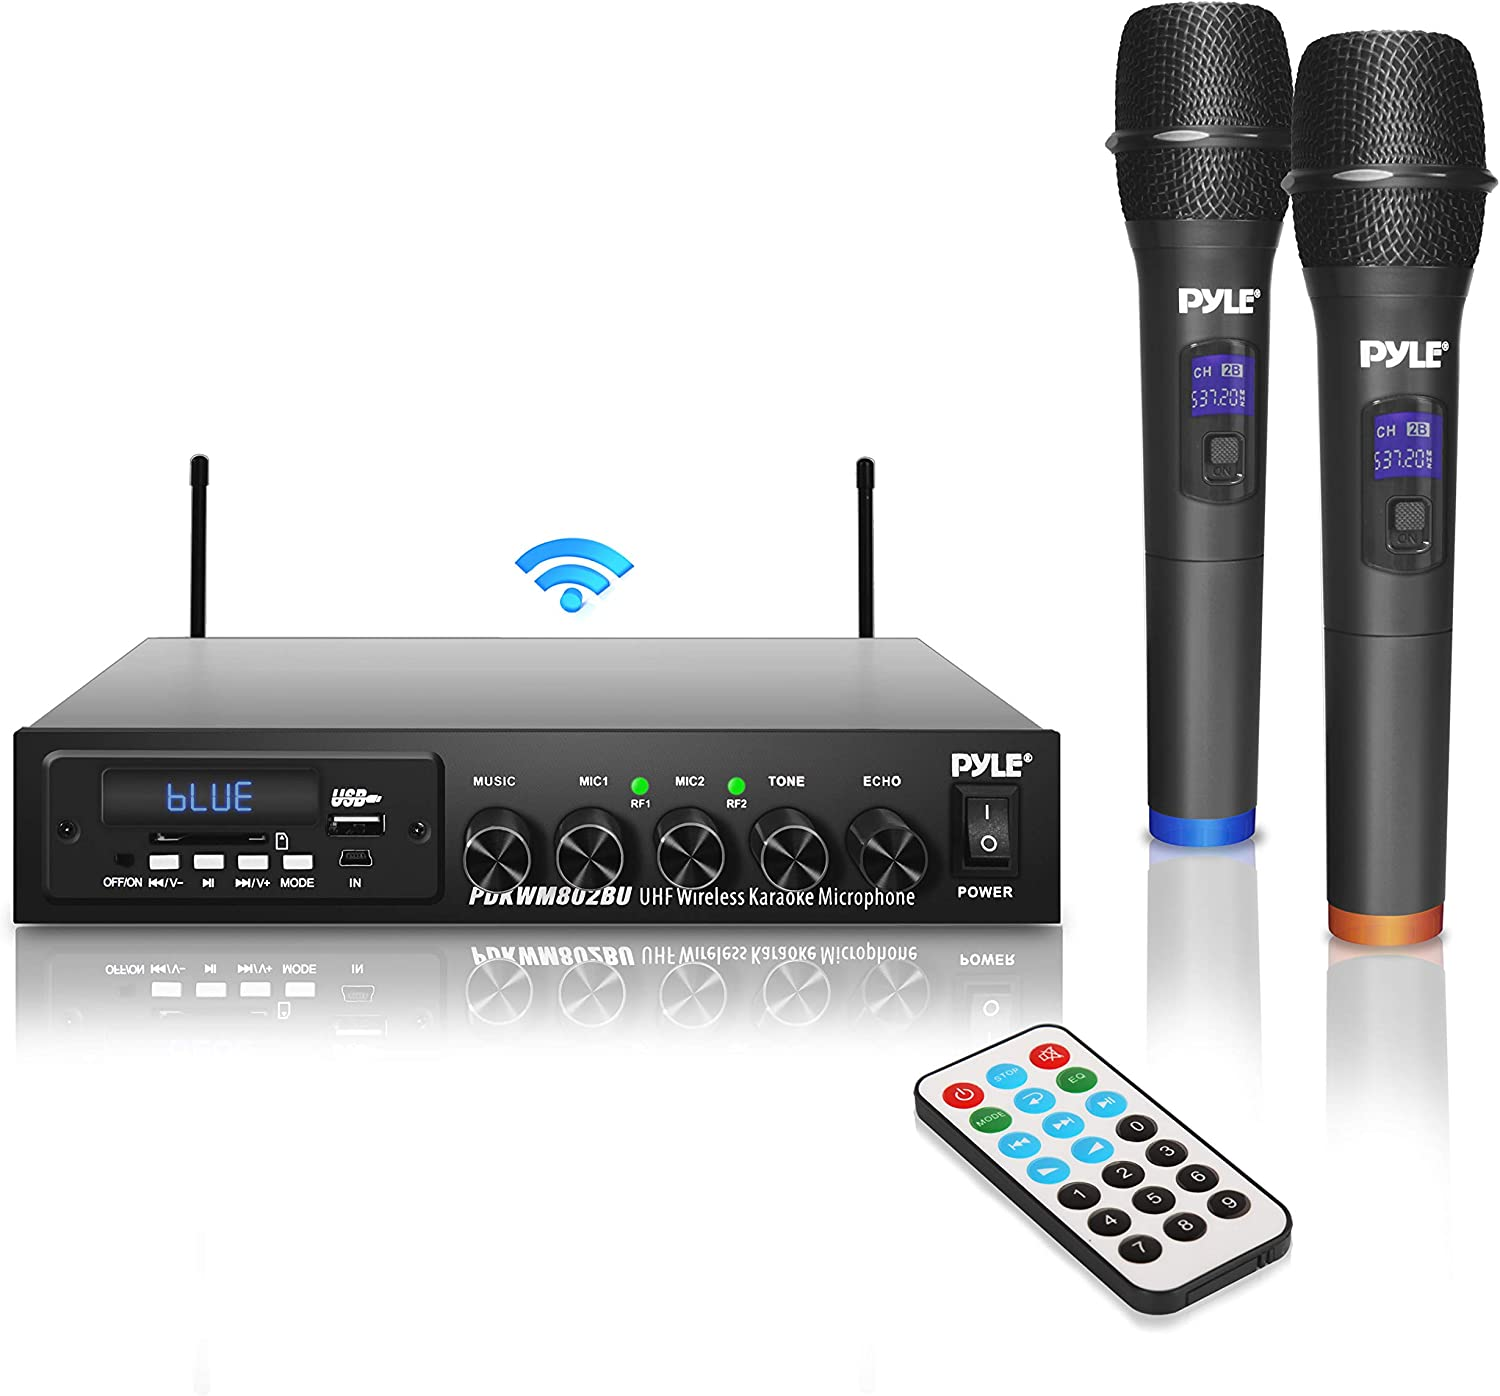 Pyle UHF Wireless Karaoke Microphone Portable Digital Audio Sound Mixer System w/Bluetooth Receiver, MIC Setting, MP3, USB, SD Readers-for DJ Music and Home Party, one size (PDKWM802BU.5)